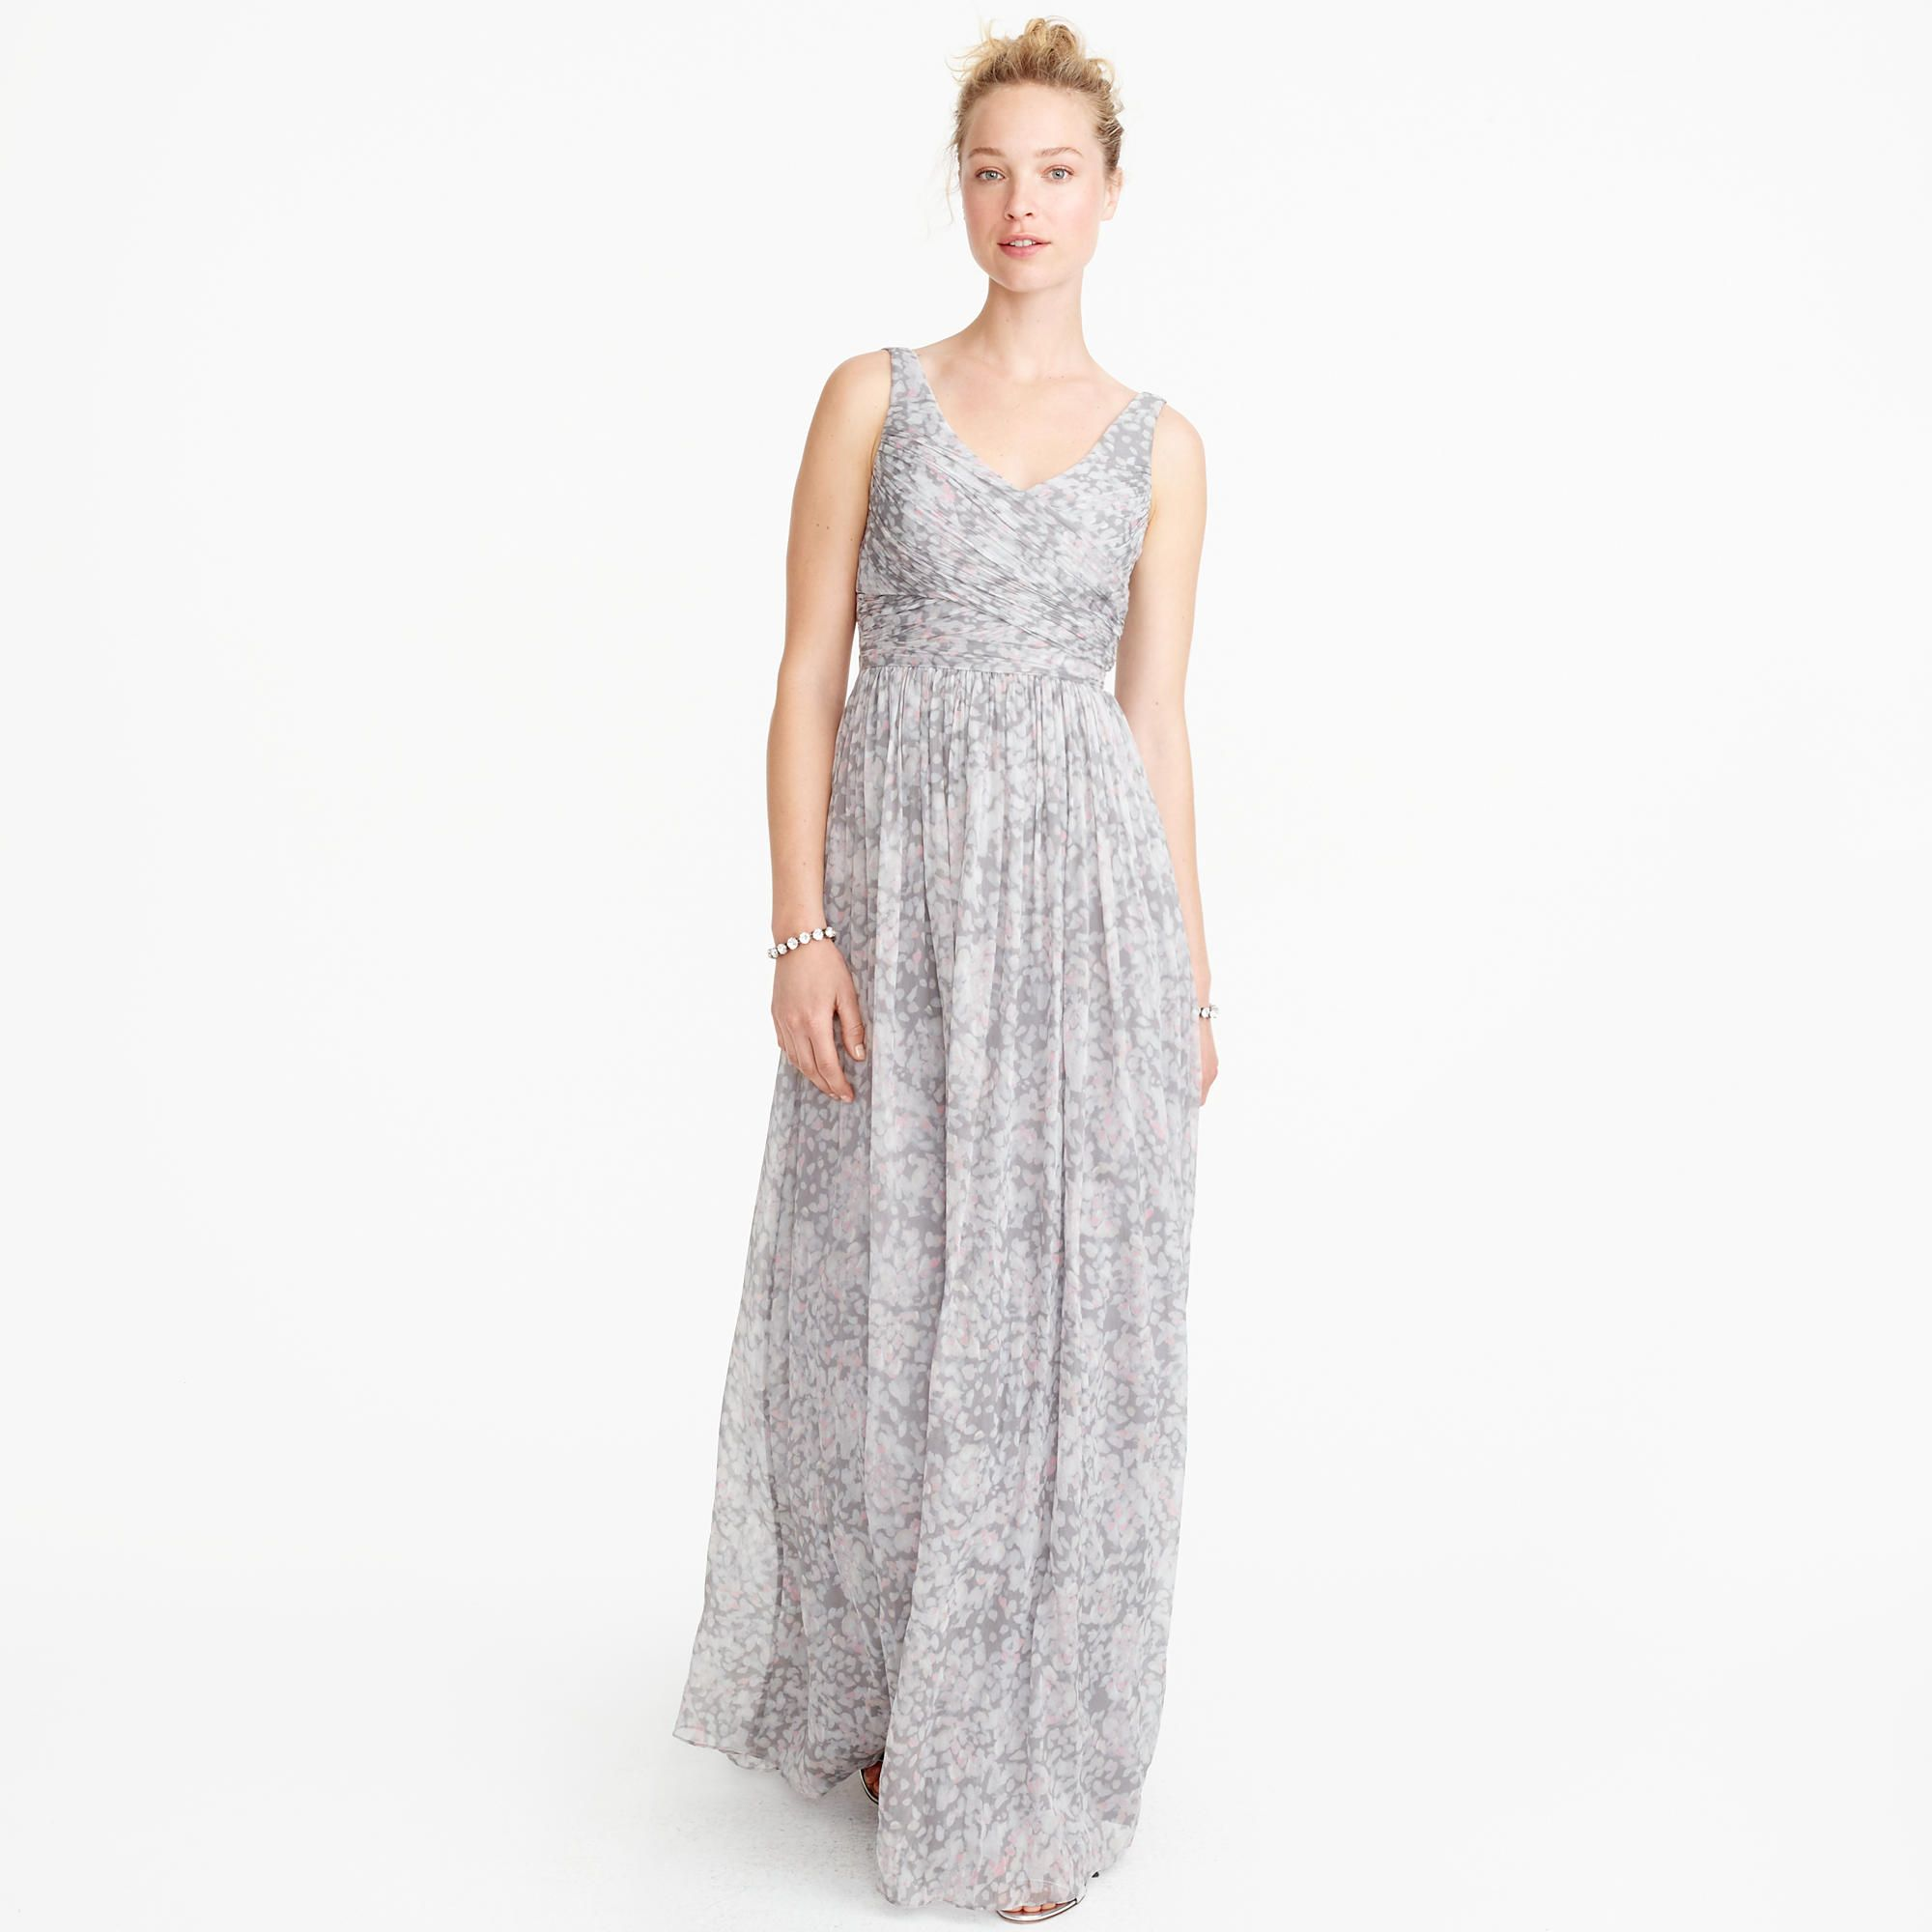 Heidi long dress in watercolor silk chiffon fashion heidi long dress in watercolor silk chiffon long dressesdress inchiffonwatercolorsbridesmaid ombrellifo Choice Image